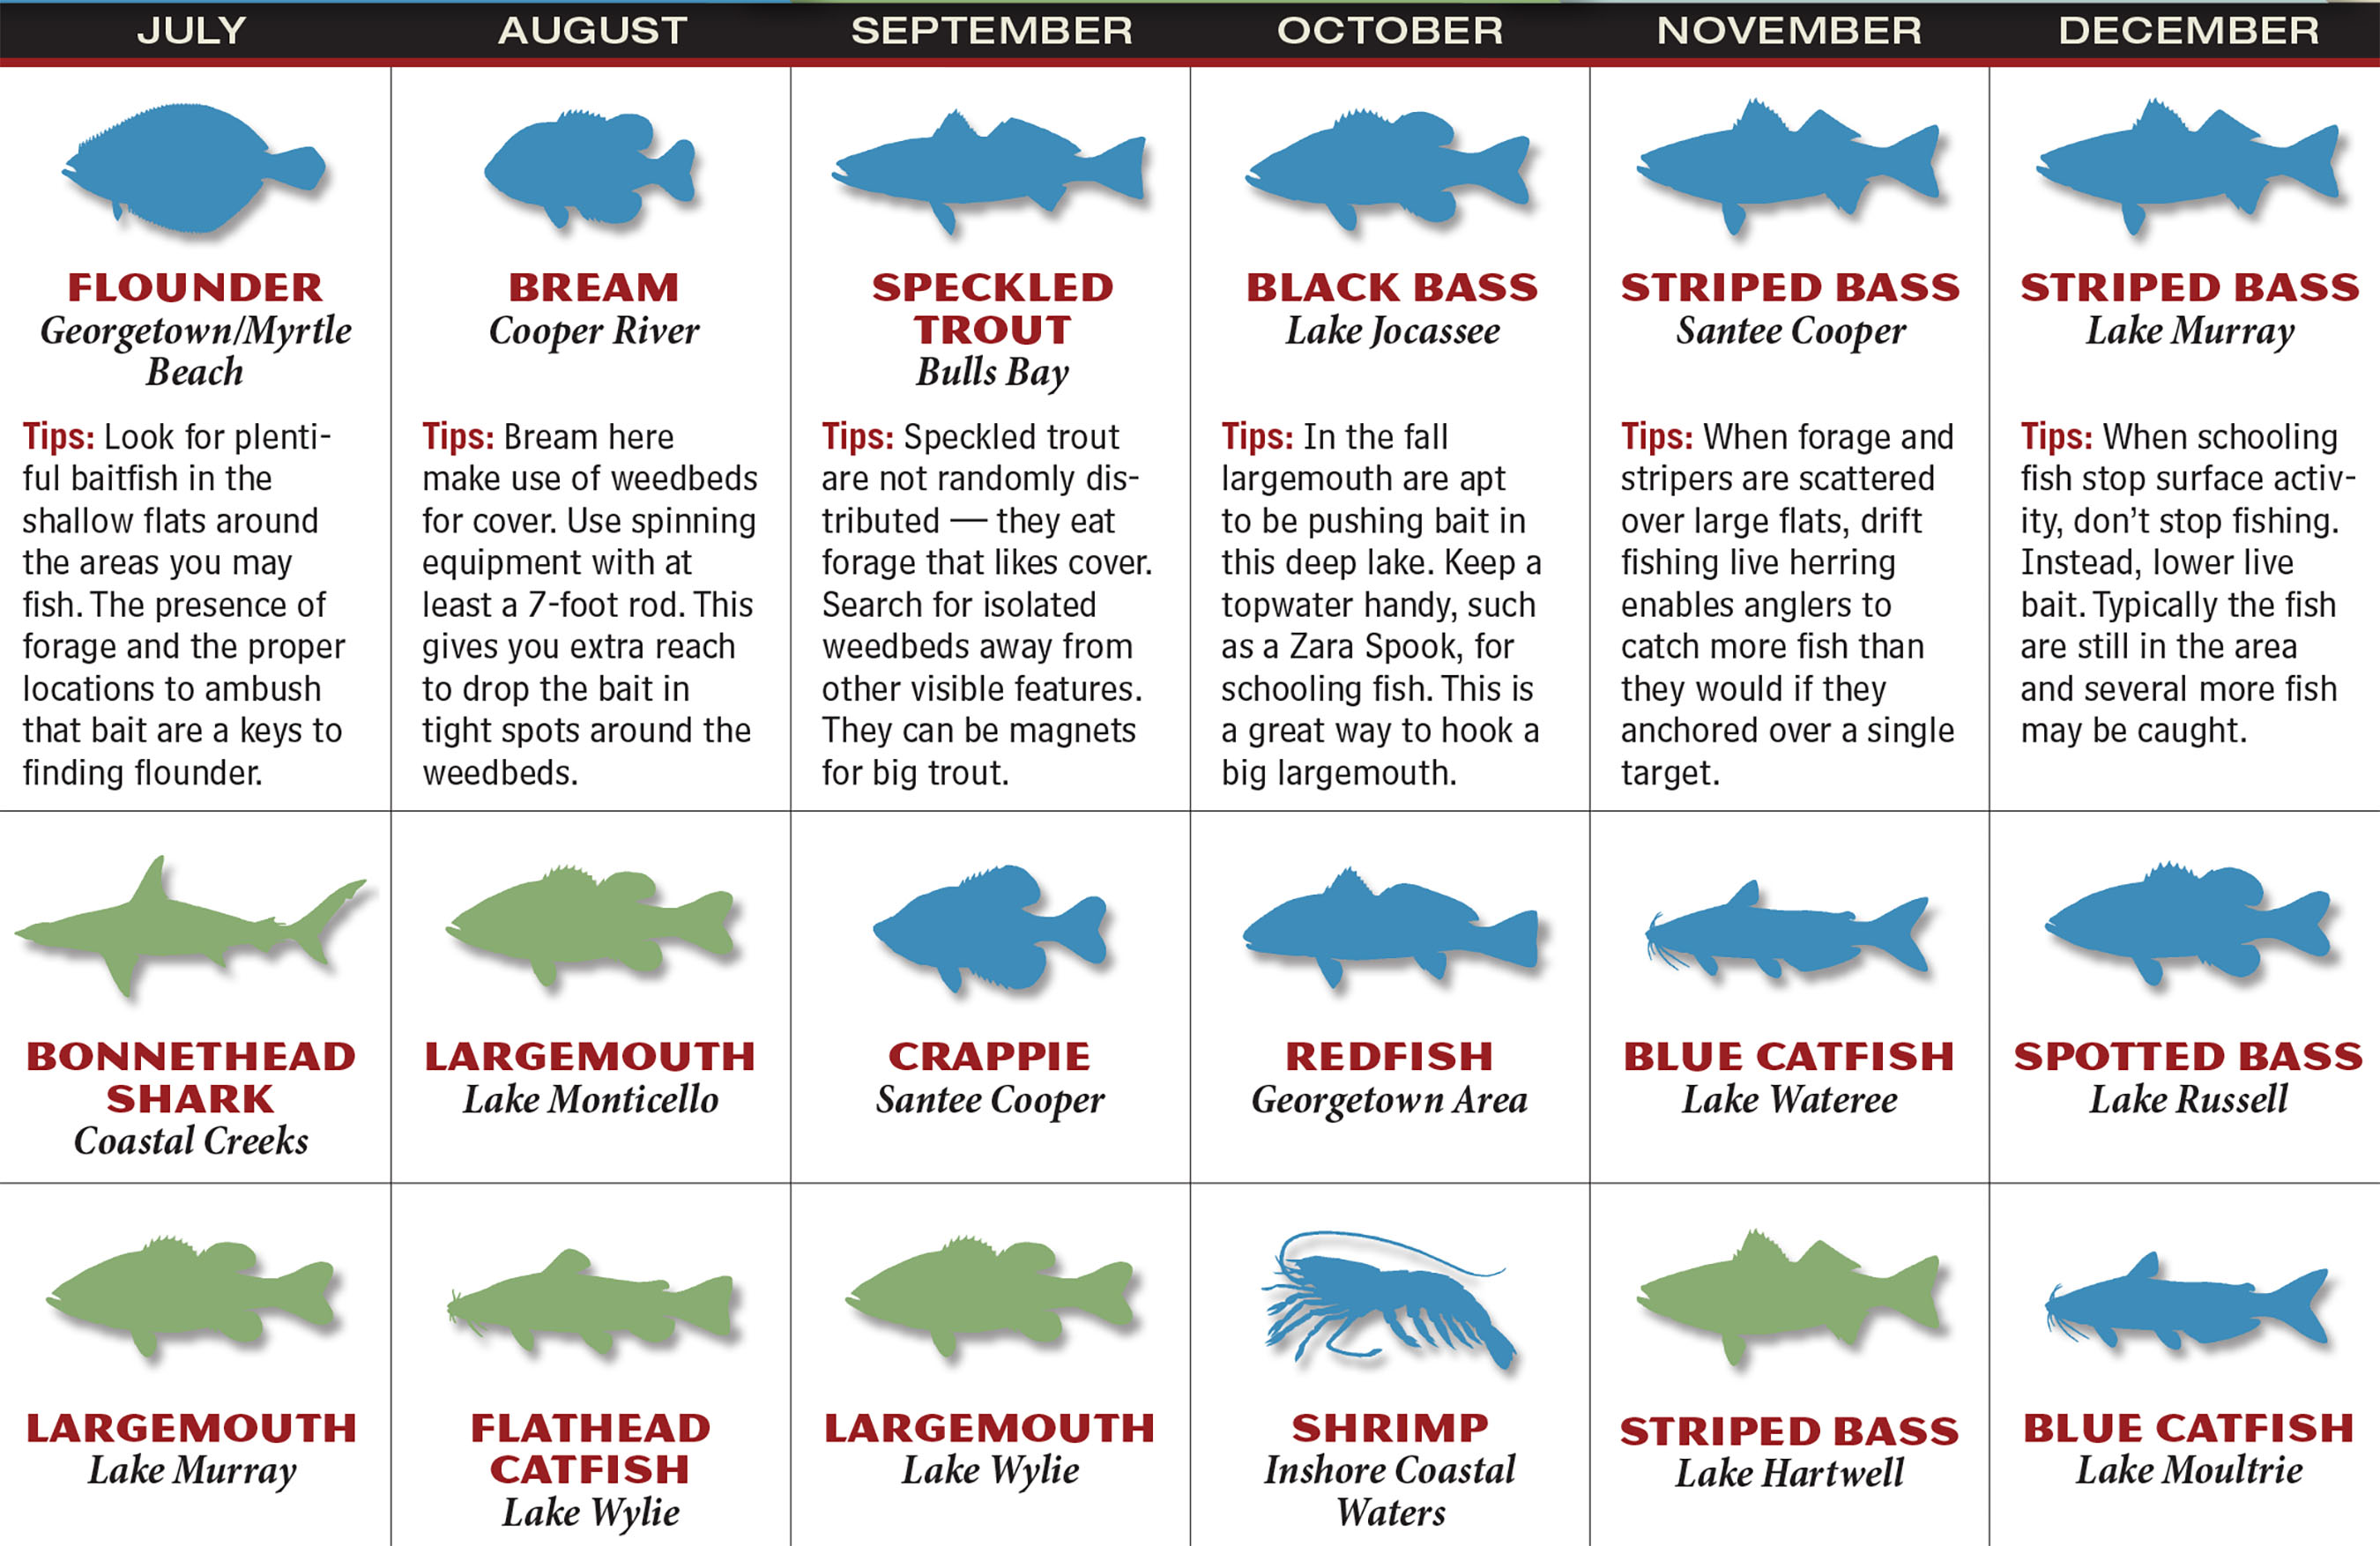 2017 south carolina fishing forecast game fish for Best time to fish calendar